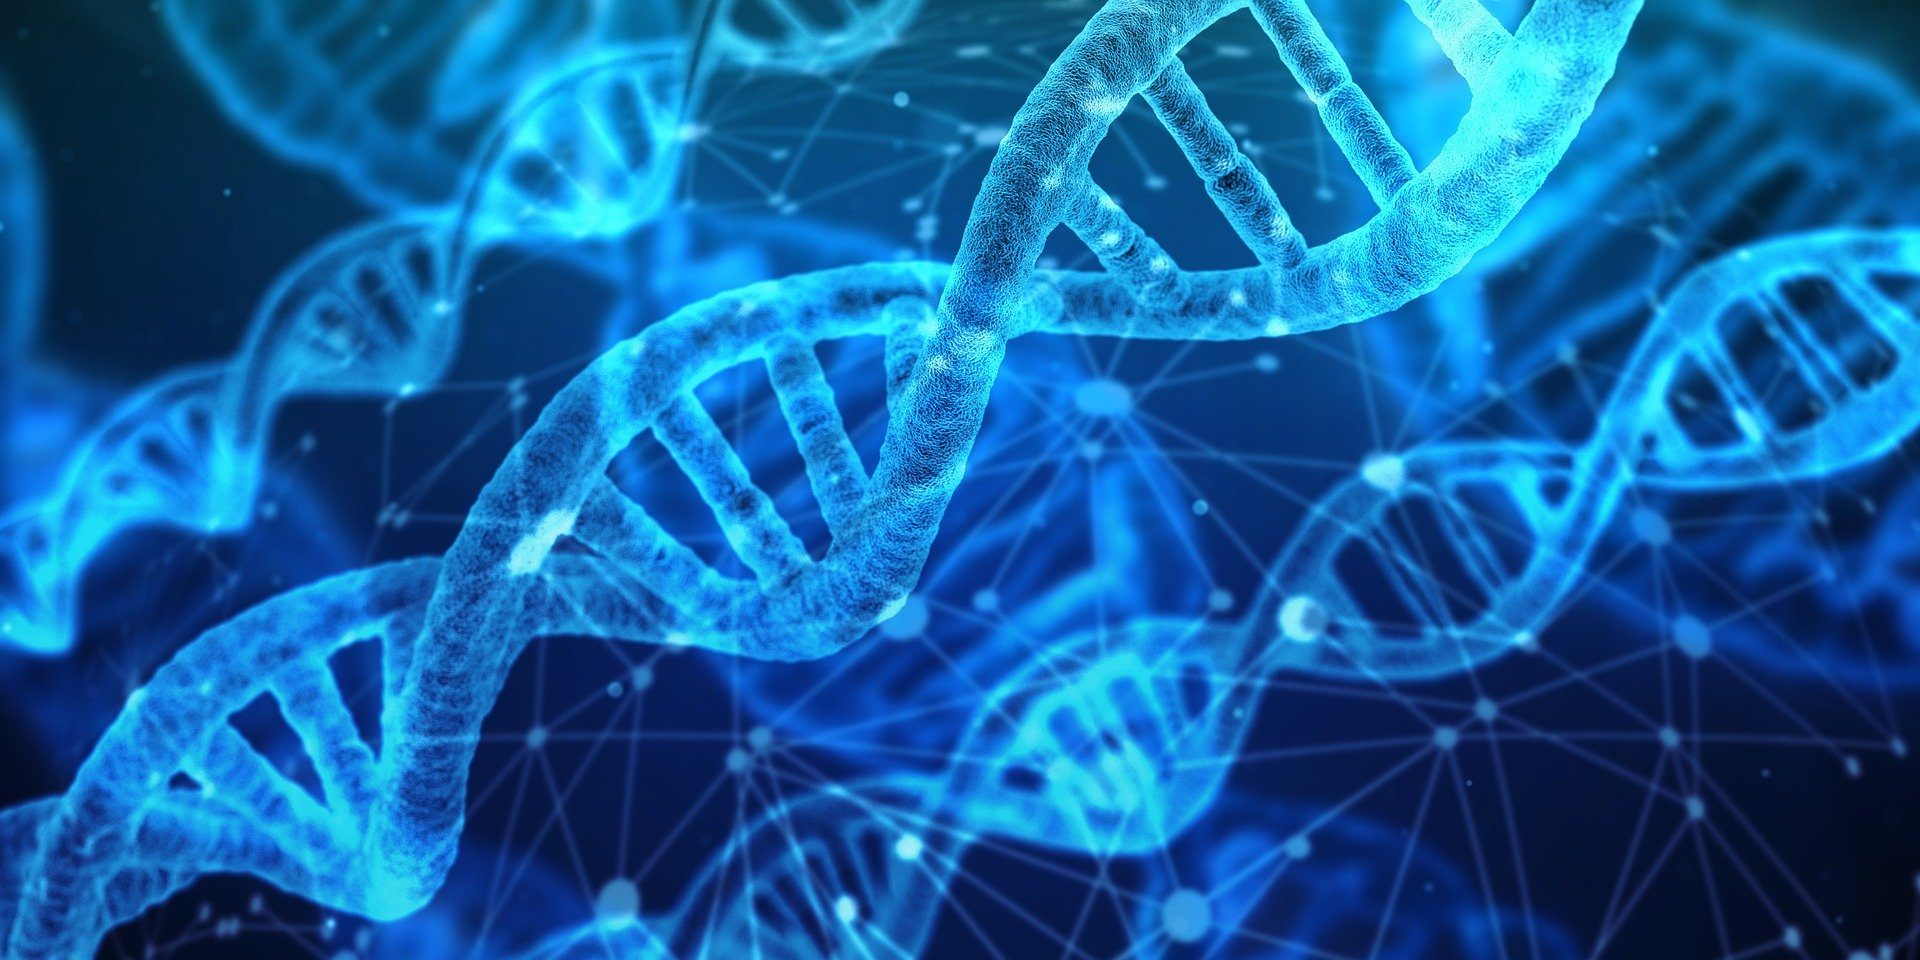 What is CRISPR and what does it mean for science? - Knowledge Factory